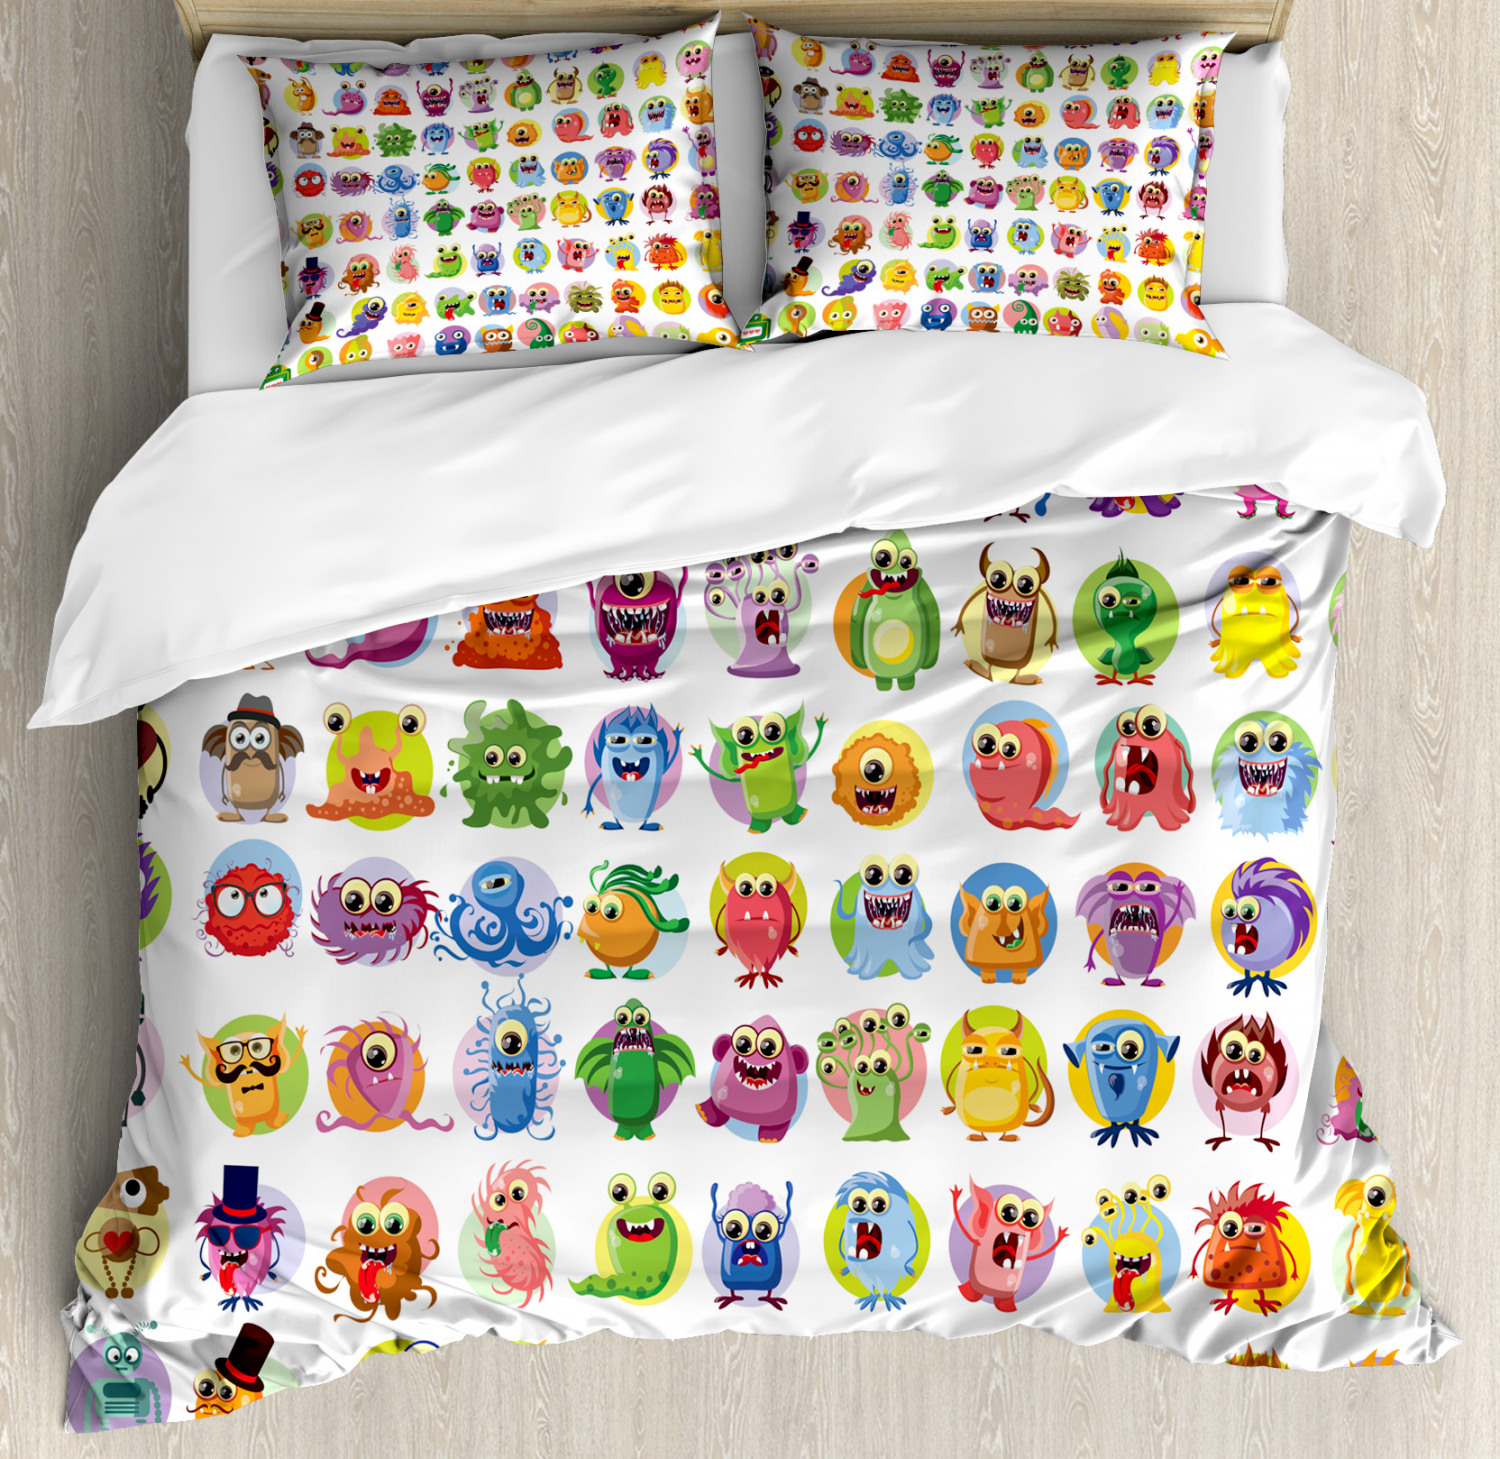 Animation Duvet Cover Set with Pillow Shams Baby Mosters Cartoon Print